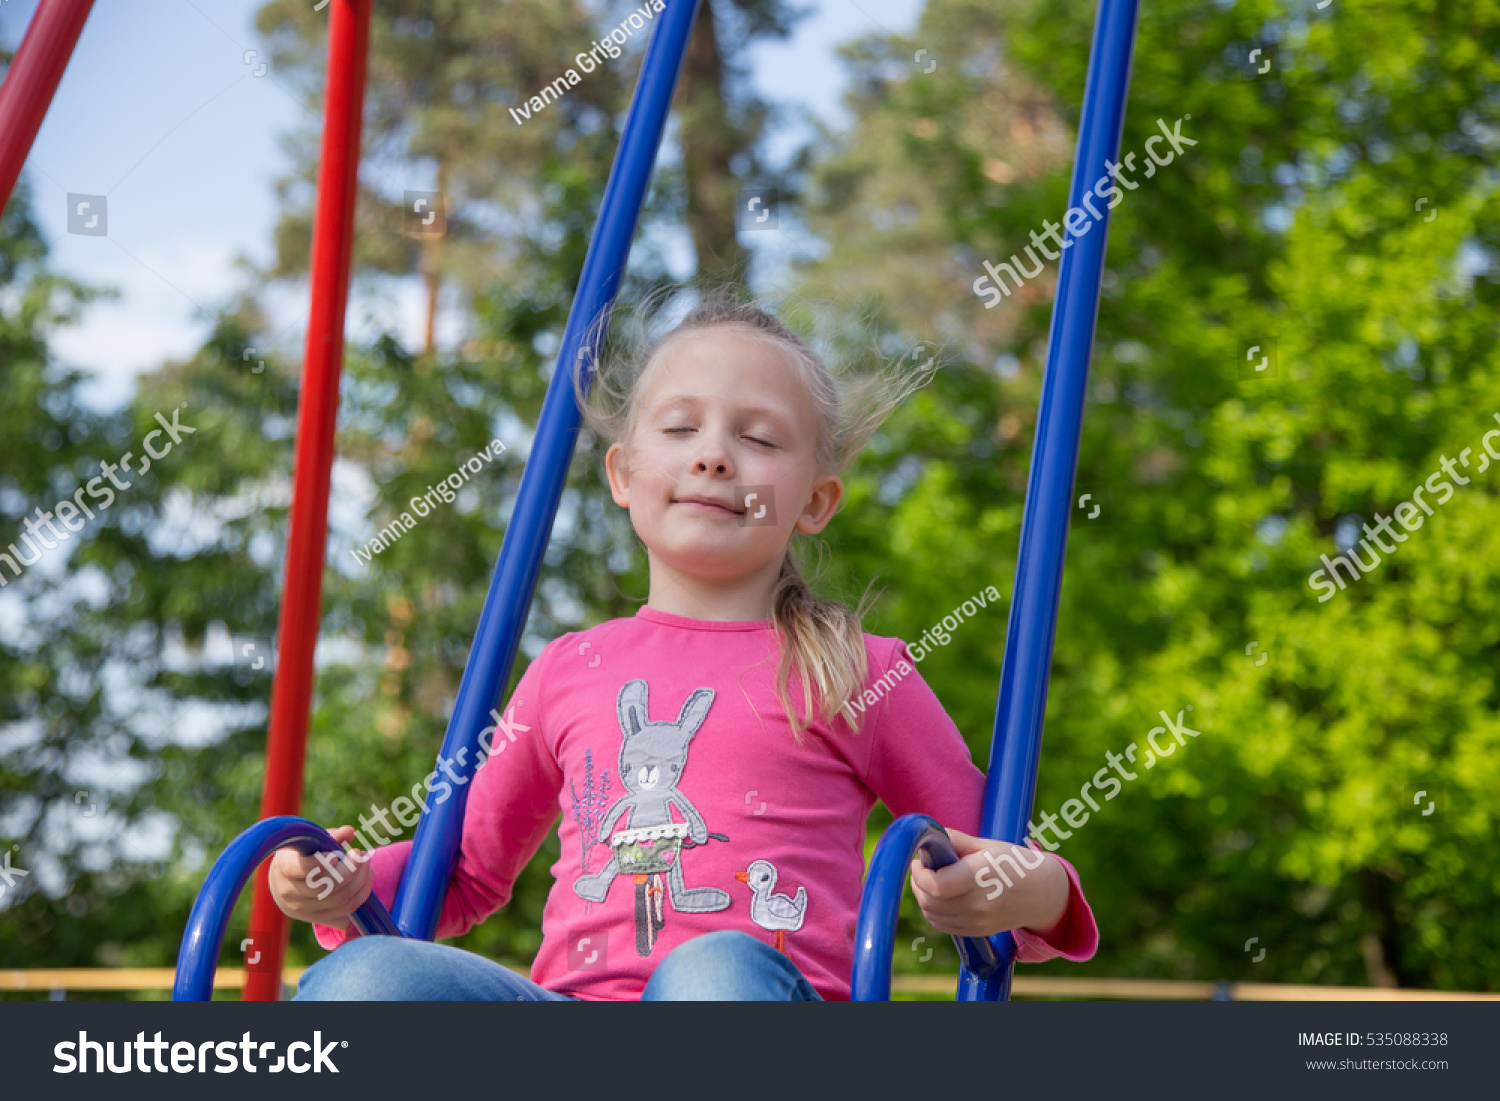 Little girl on playground child playing stock photo for Childrens play yard